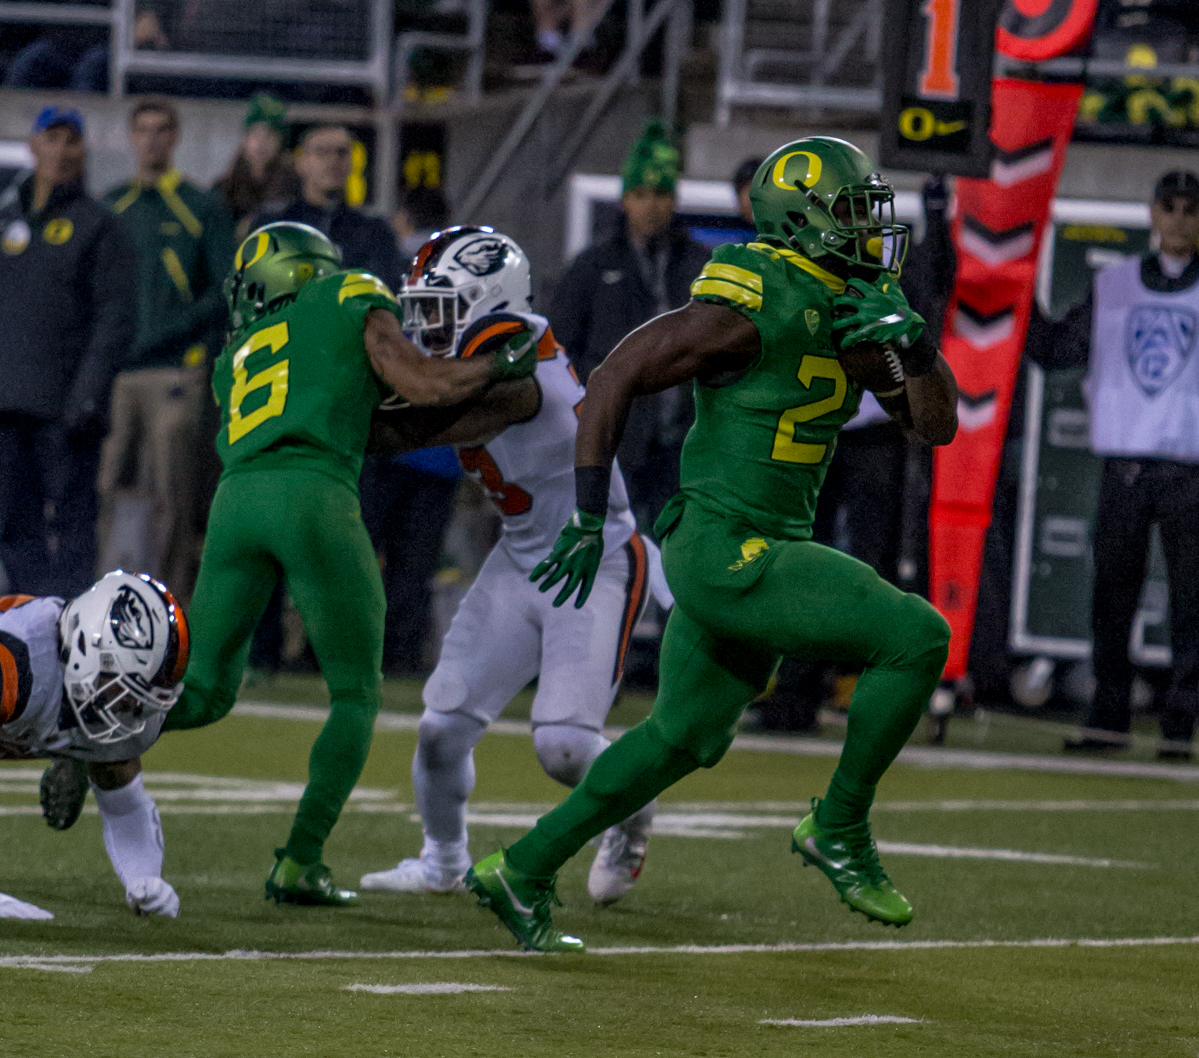 Oregon running back Royce Freeman (#21) runs the ball for a touchdown. The Oregon Ducks lead the Oregon State Beavers 52 to 7 at the end of the first half of the 121st Civil War game on Saturday, November 25, 2017 at Autzen Stadium in Eugene, Ore. Photo by Ben Lonergan, Oregon News Lab